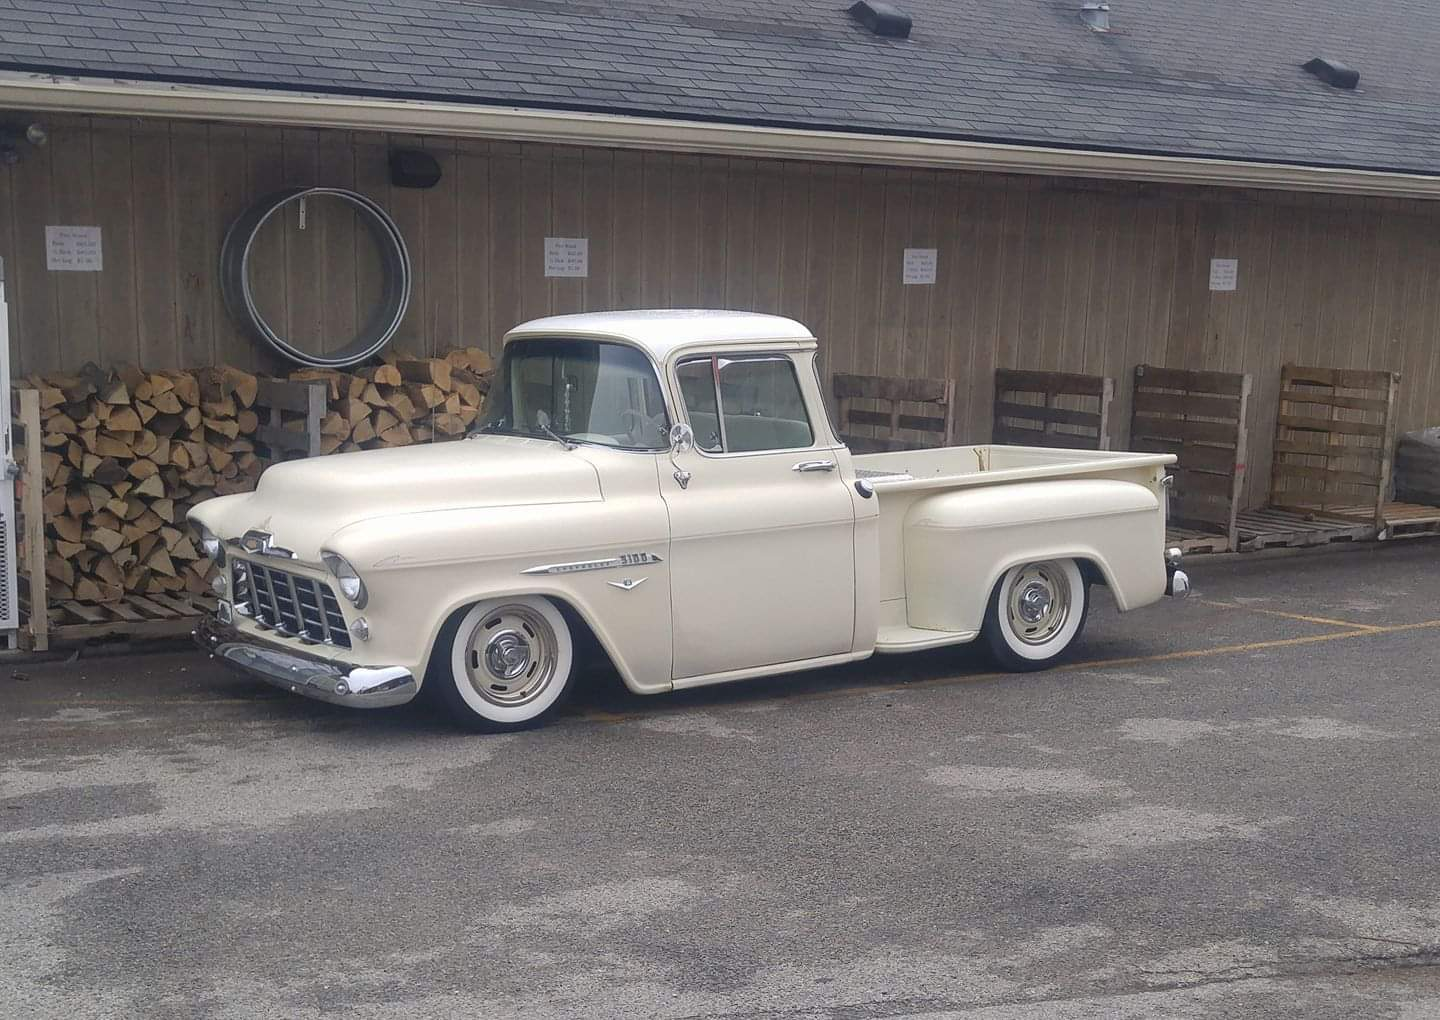 Came out of the hardware store and was greeted by this gorgeous '56 Chevy truck.